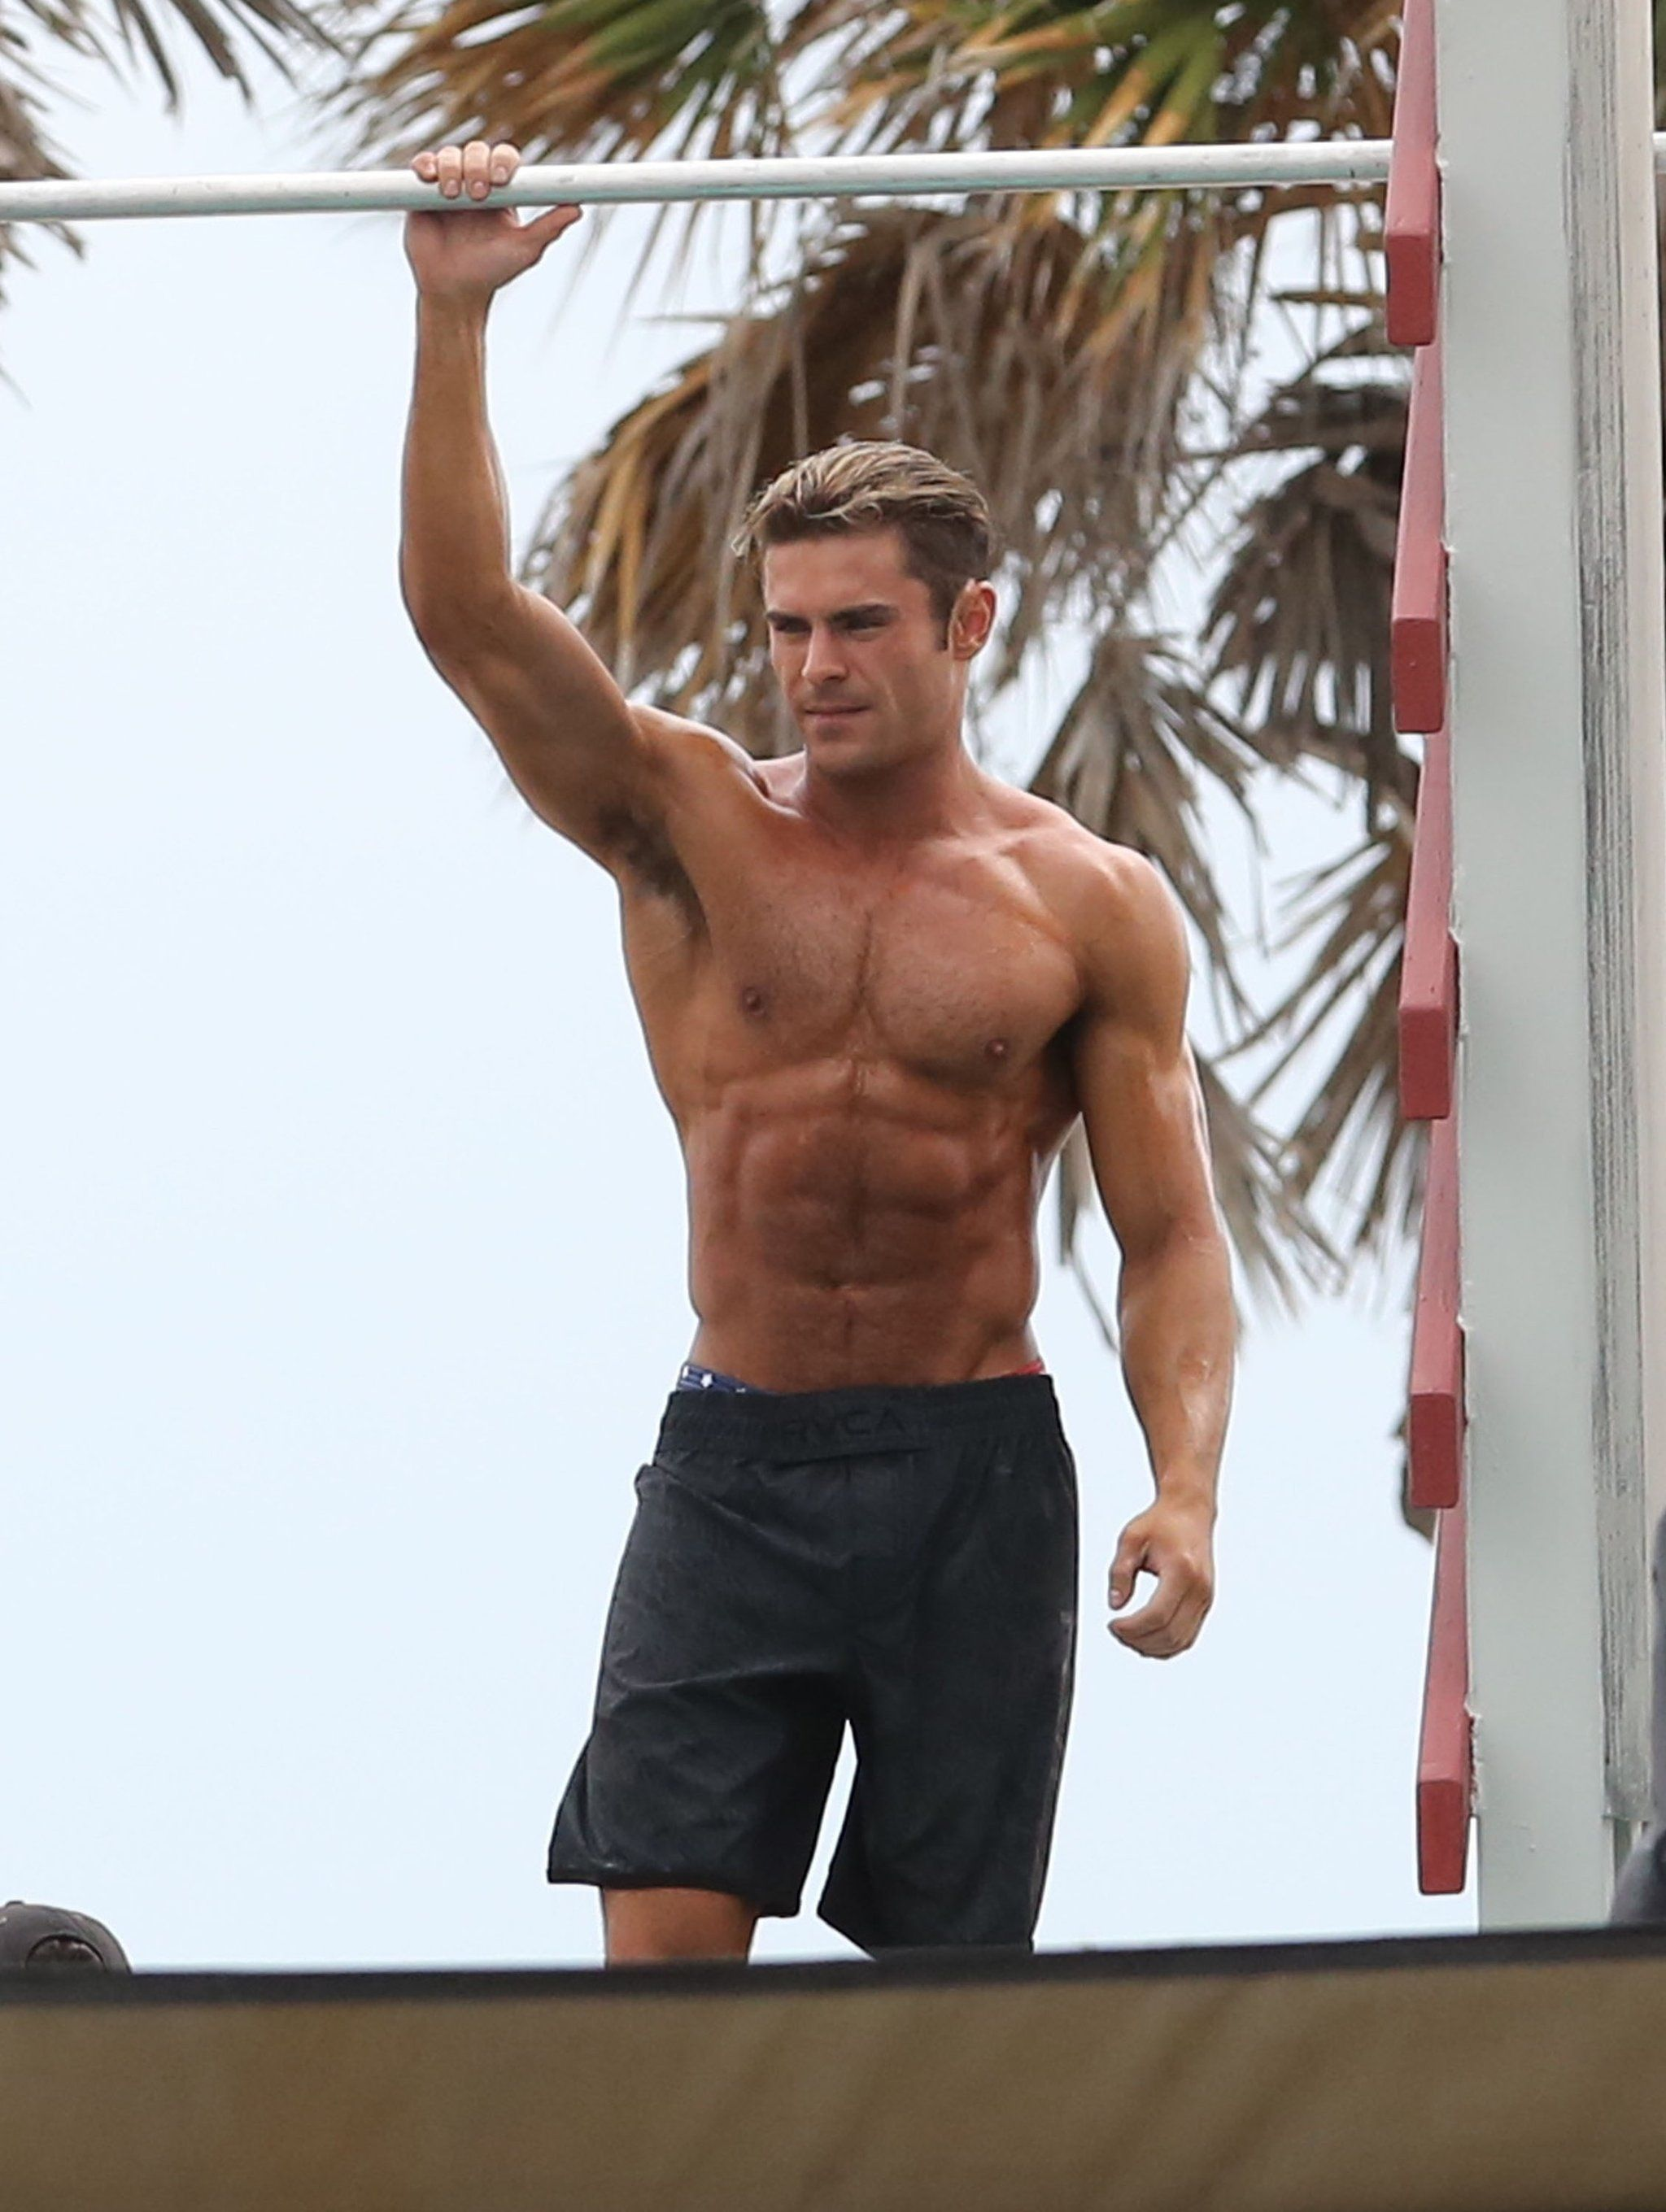 You'll Definitely Need CPR After Seeing These Shirtless Zac